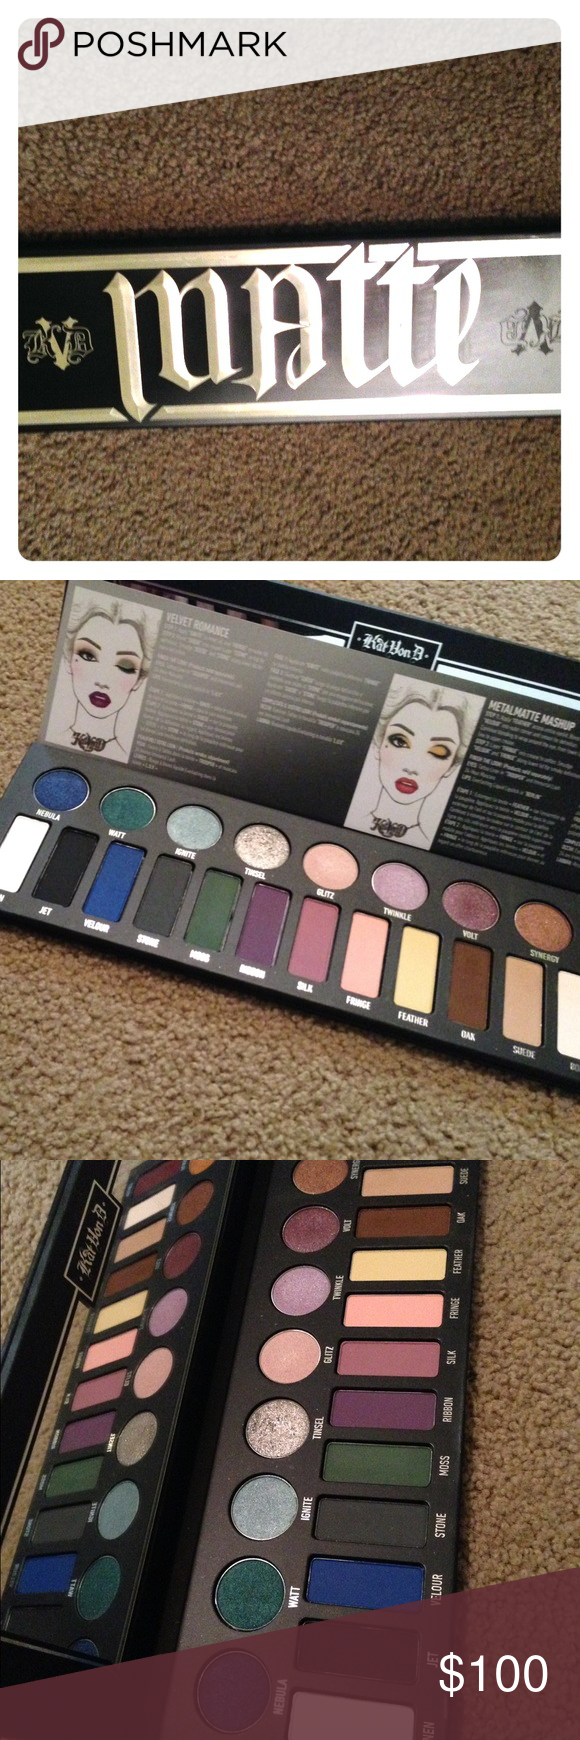 Kat Von D Metal Palette 🎨 Limited Edition Authentic Kat Von D Palette! Brand New never used only swatched! Price is firm open to reasonable offers! Kat Von D Makeup Eyeshadow